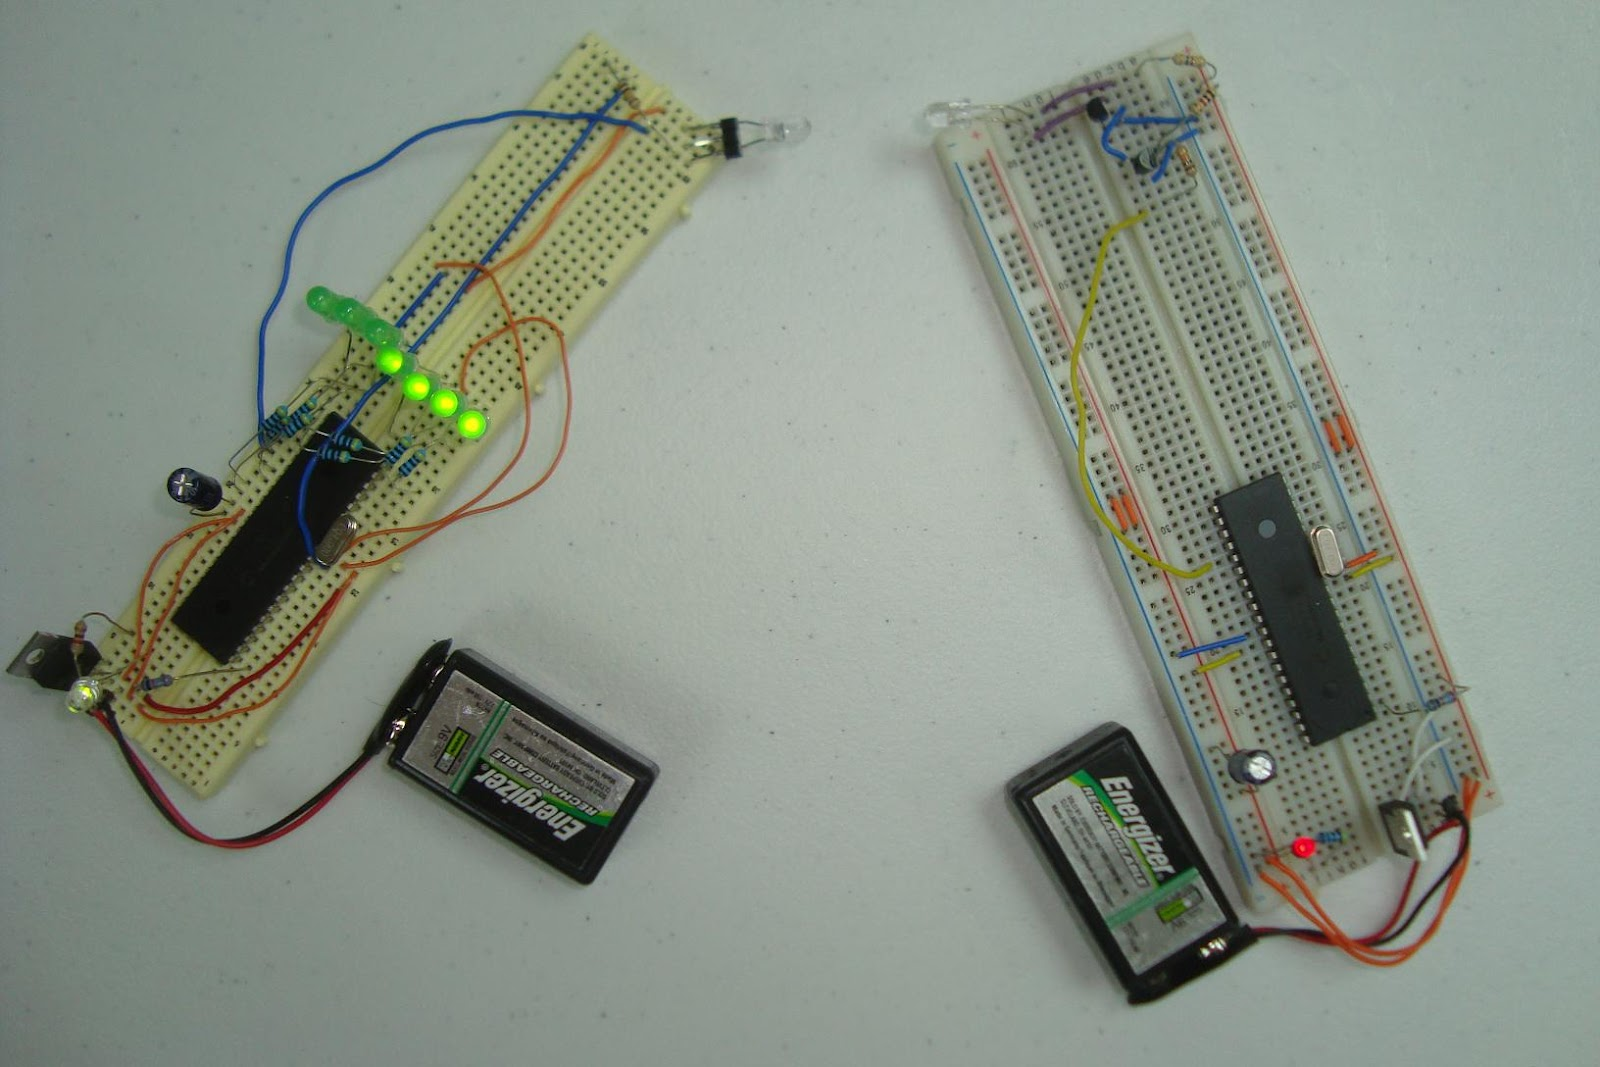 projectpiles com wireless infra red communication link photodiode in proteus an infra red link using an avr (lego